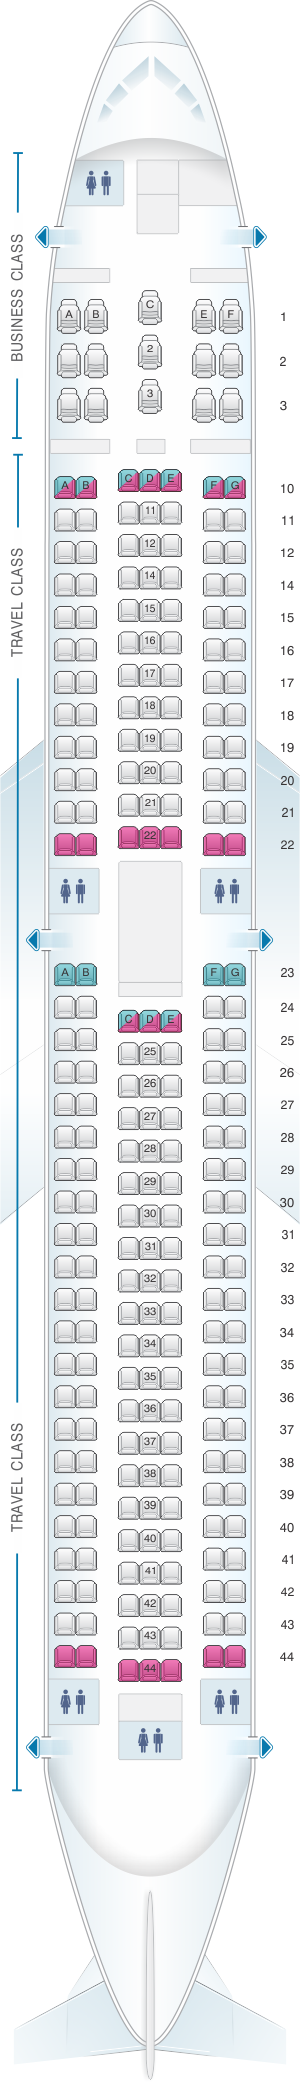 Seat map for Asiana Airlines Boeing B767 300 250PAX